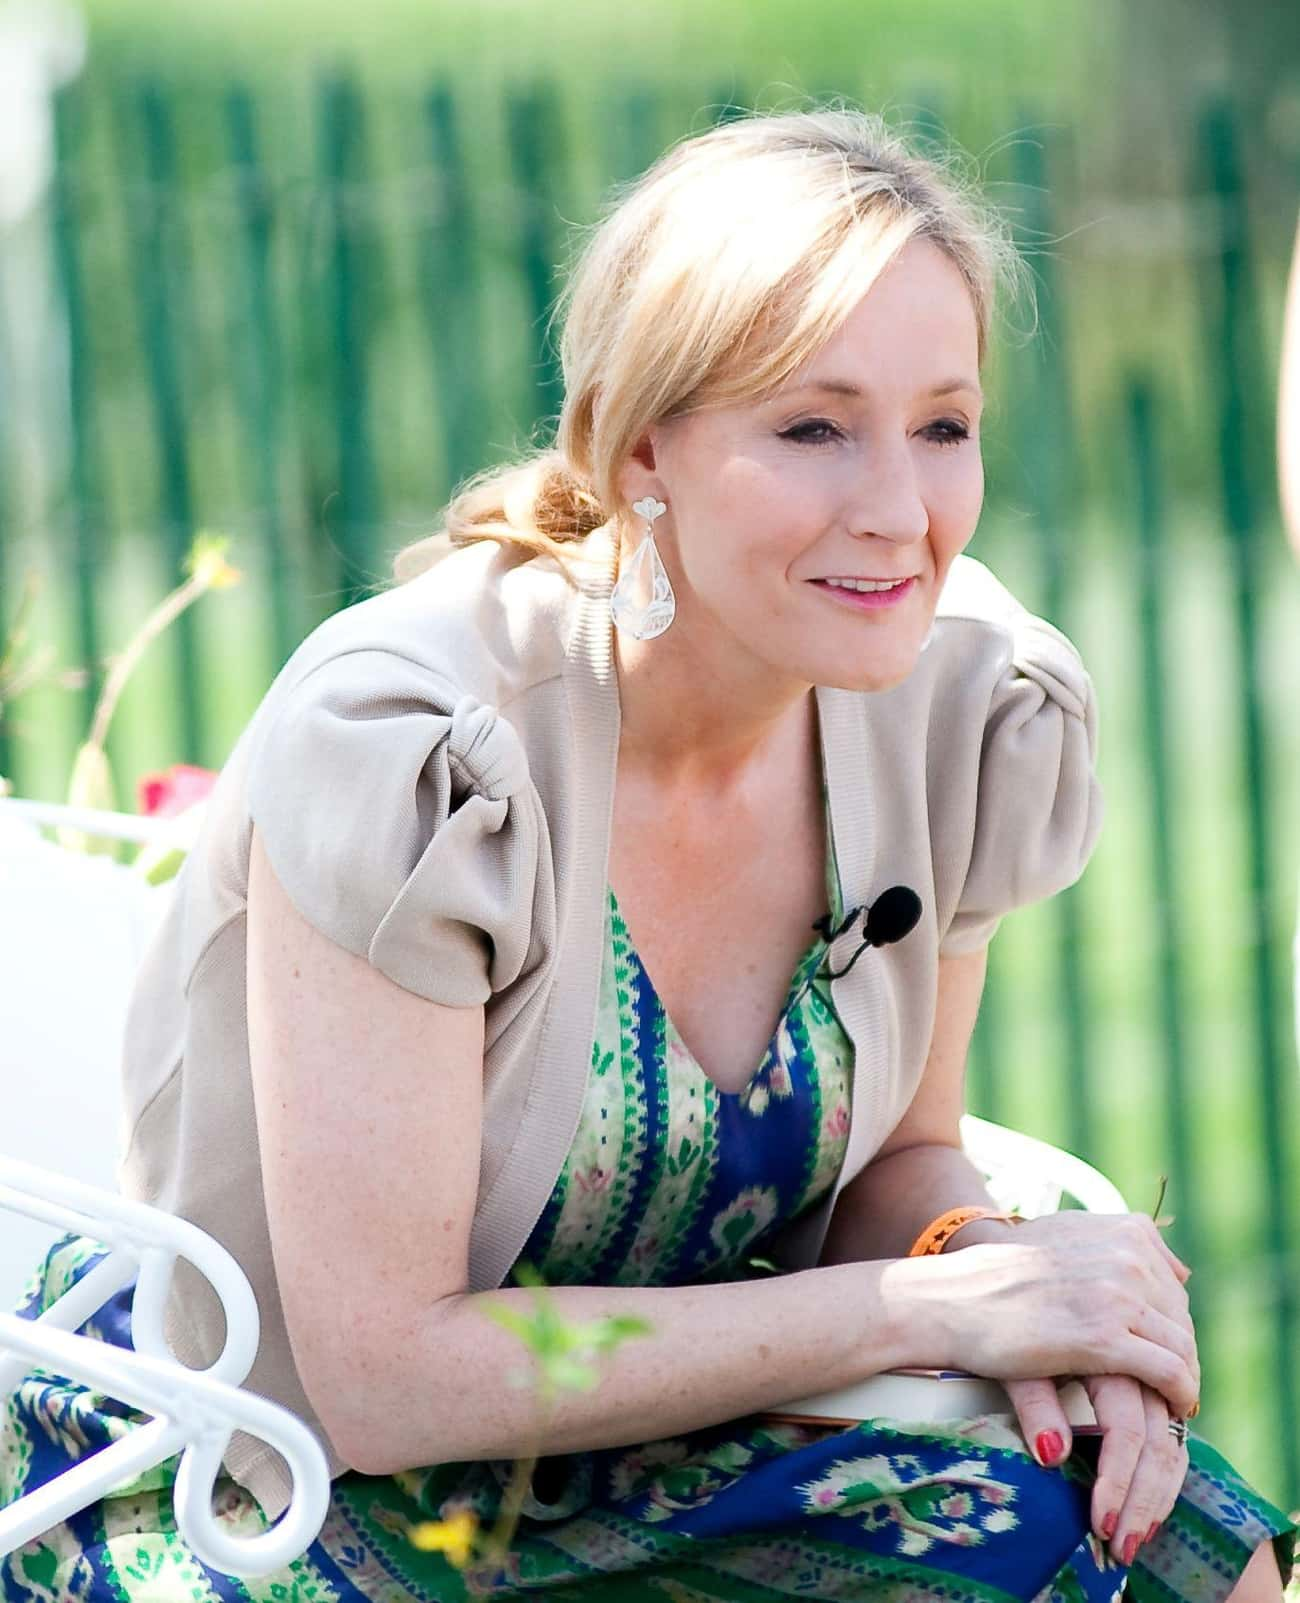 J.K. Rowling's Relatives Are Chill About Her Writing Career